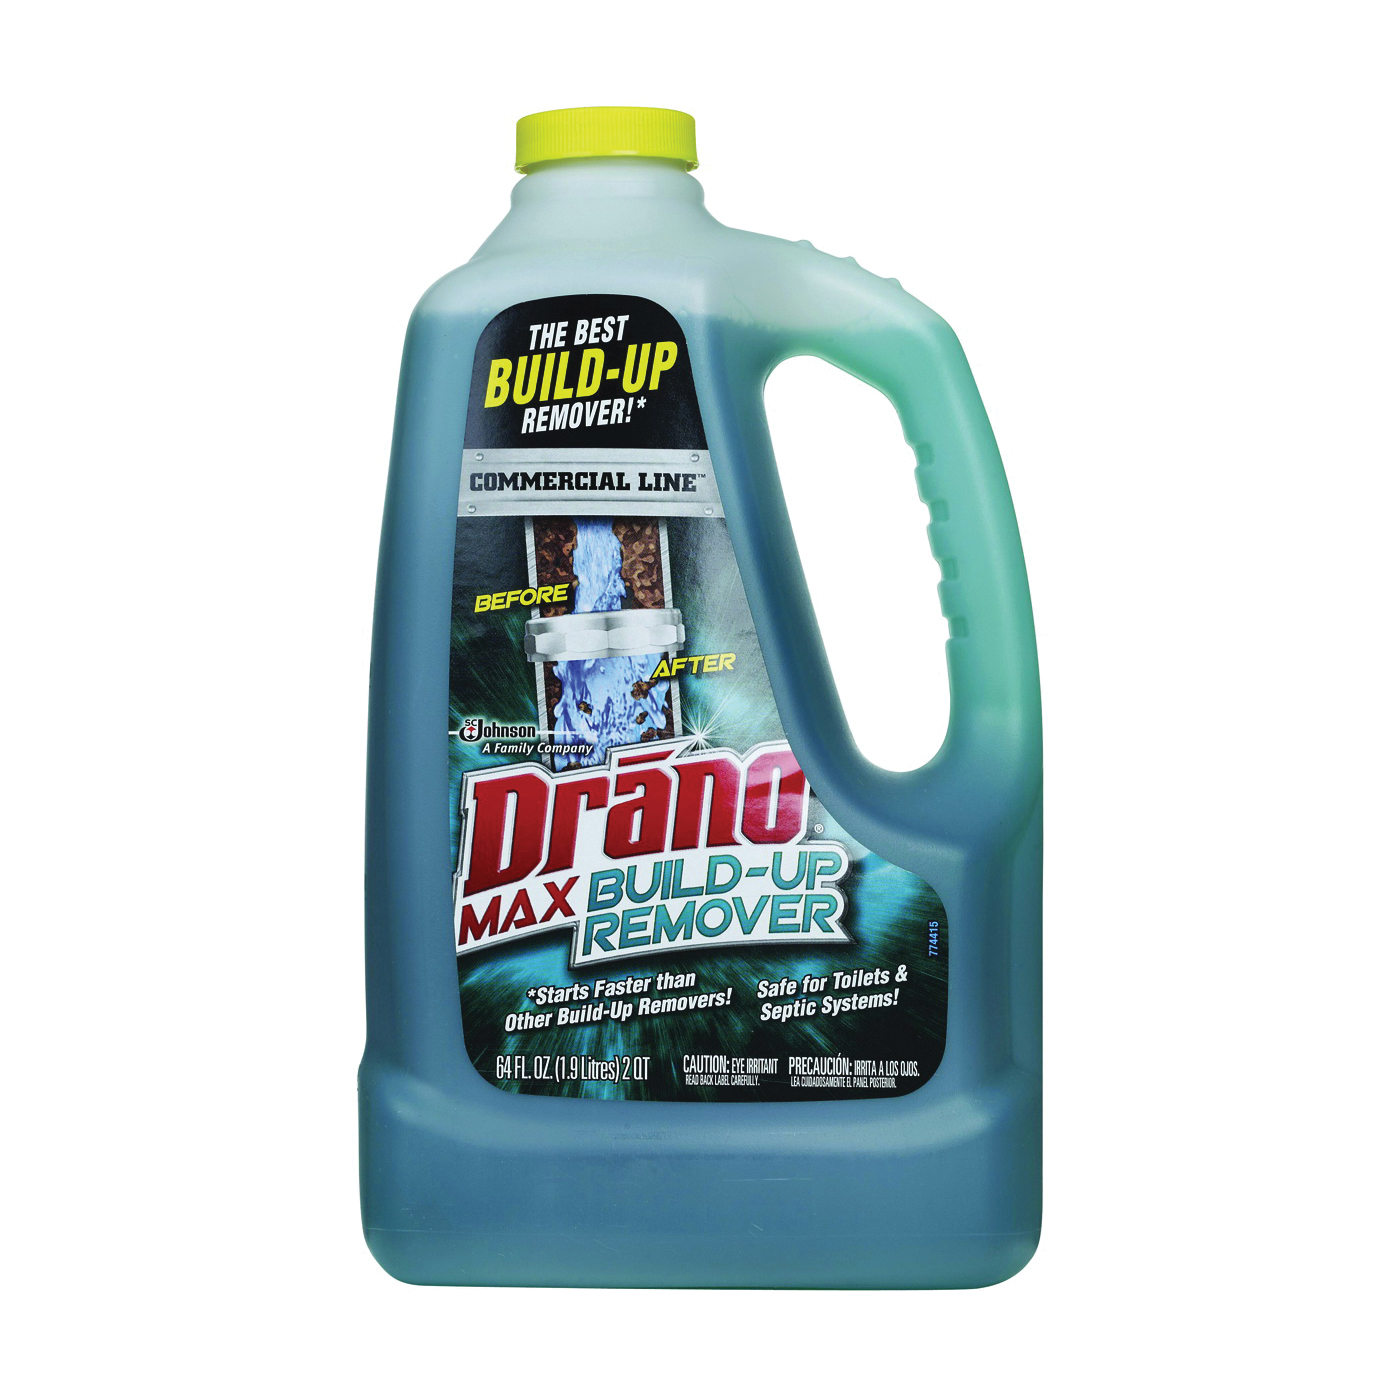 Picture of Drano Max Build-Up 70240 Clog Remover, Liquid, Green, Pleasant, 64 oz Package, Bottle